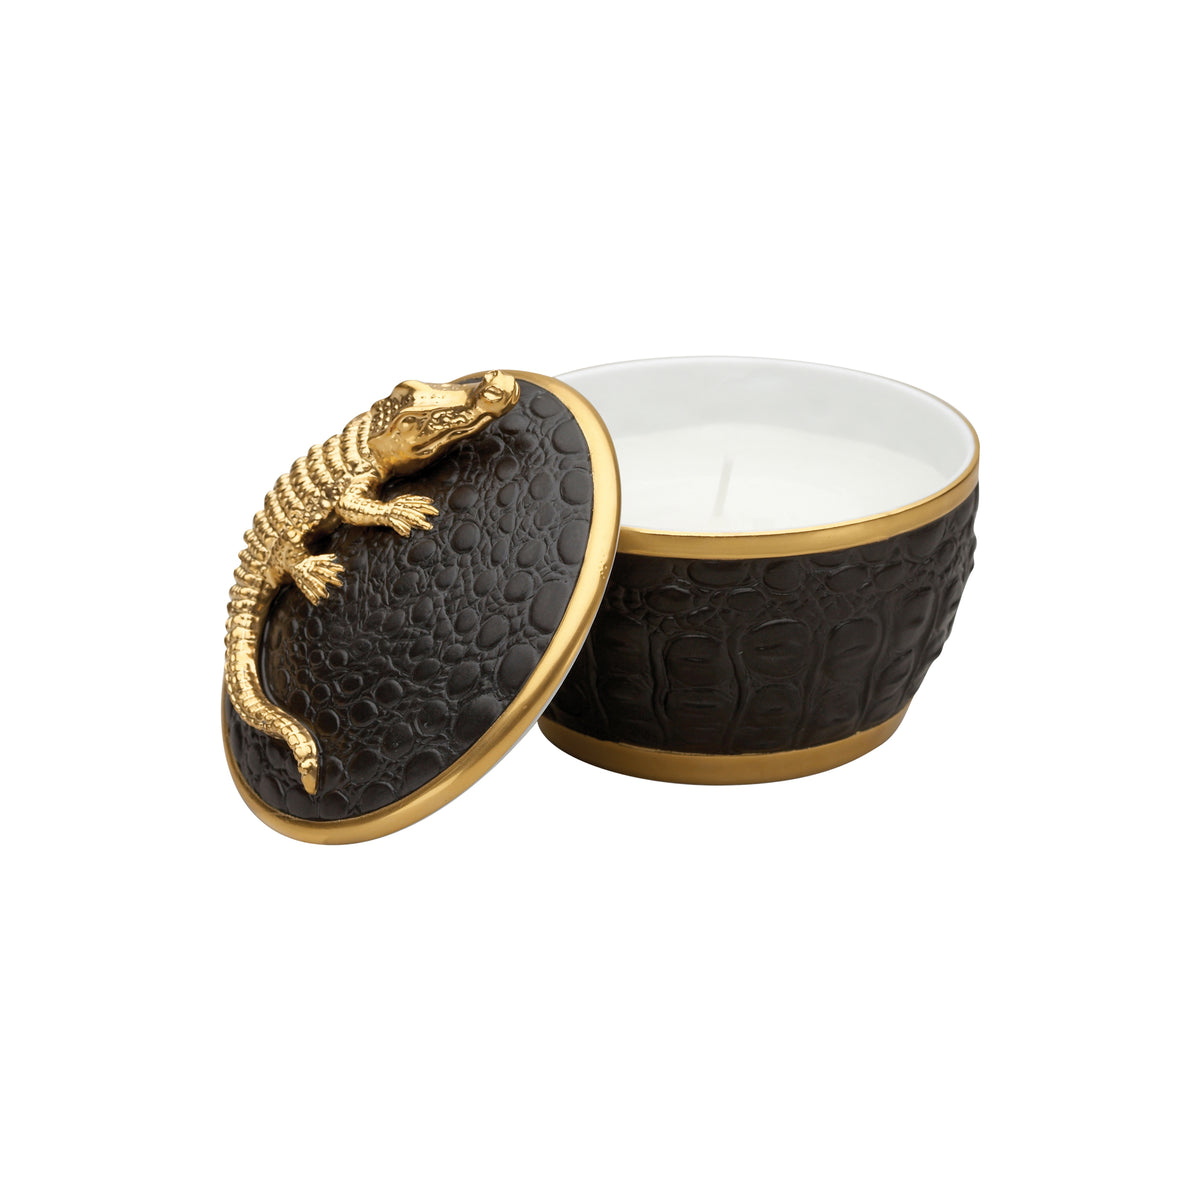 Gold Crocodile Candle on Black Porcelain Base